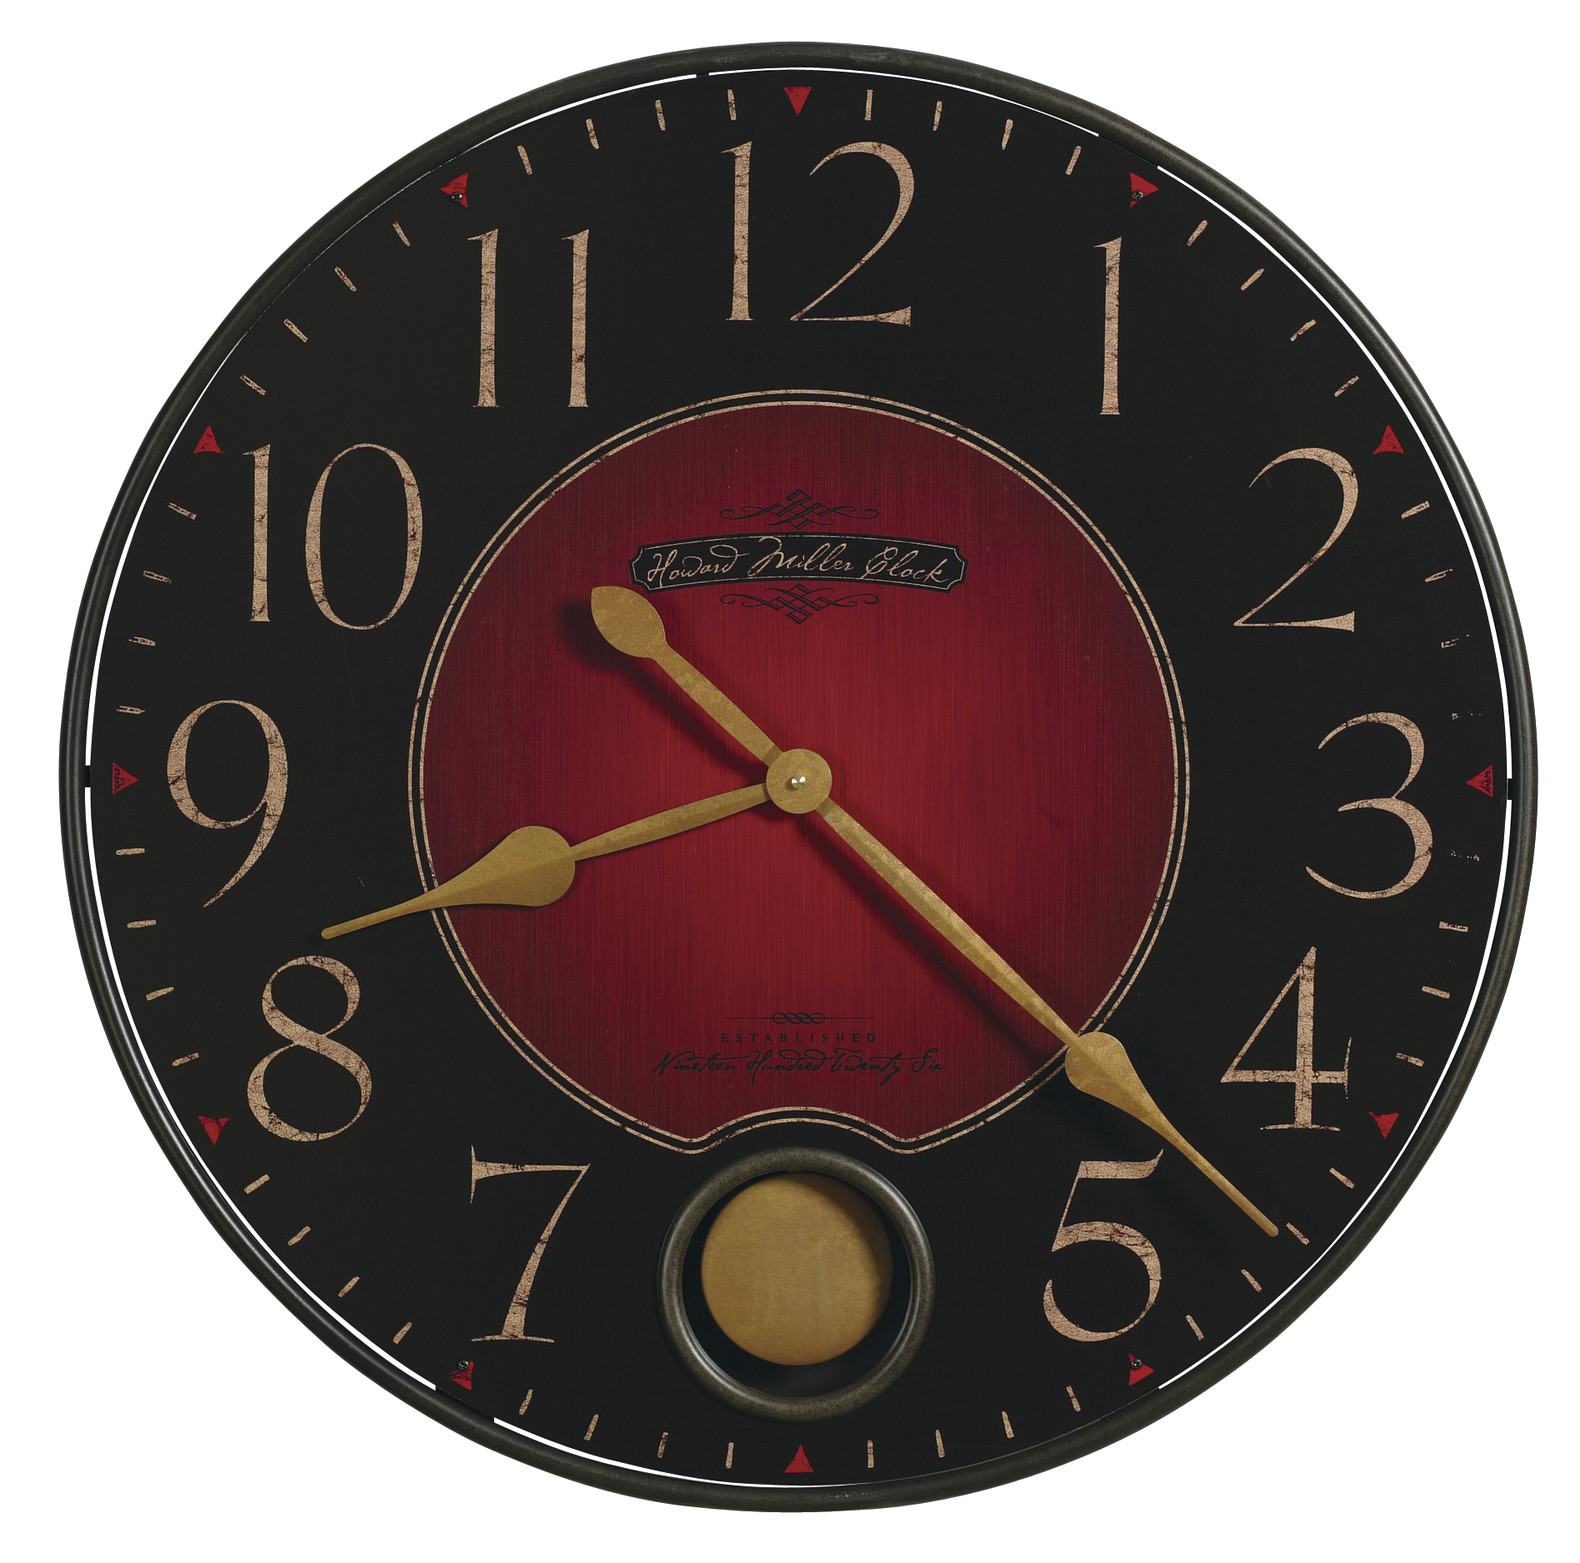 Oversized Wall Clocks with golden hand plus red and black background